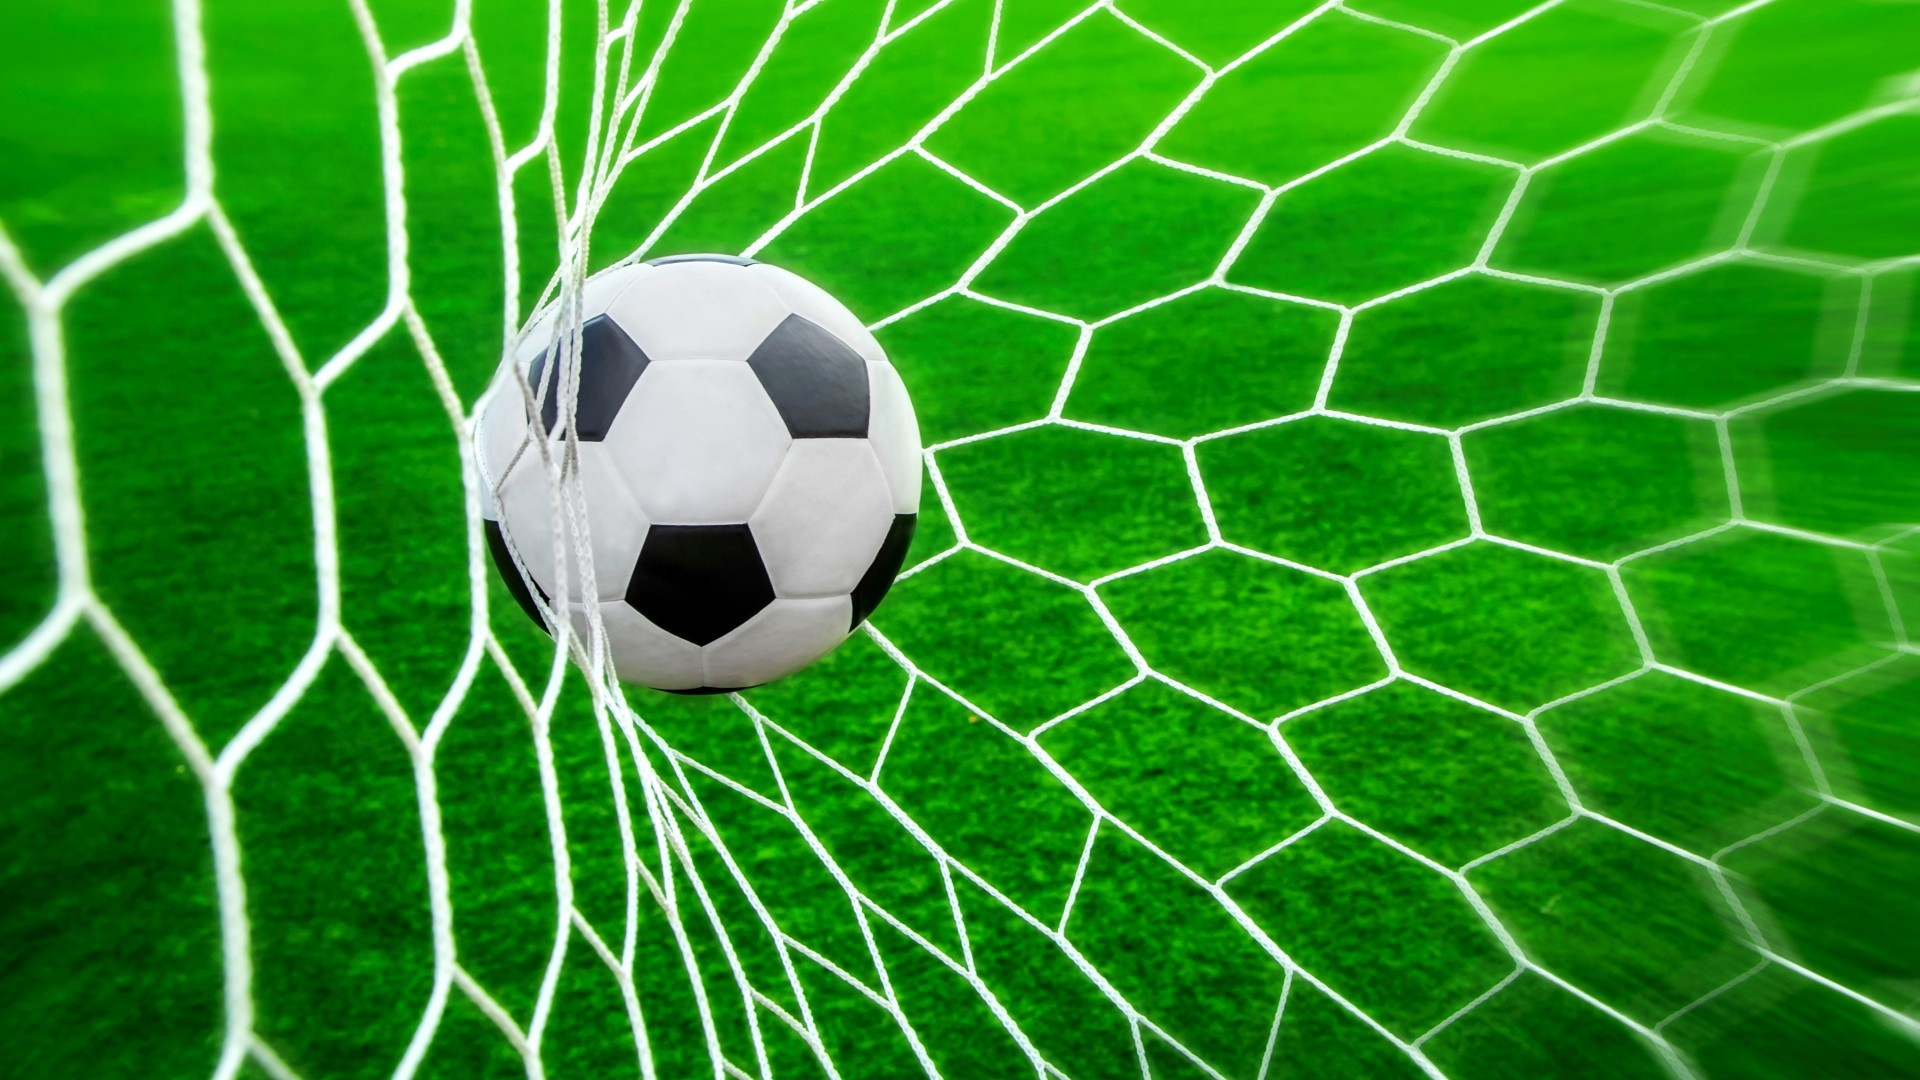 Ball and net for football wallpapers and images   wallpapers pictures 1920x1080